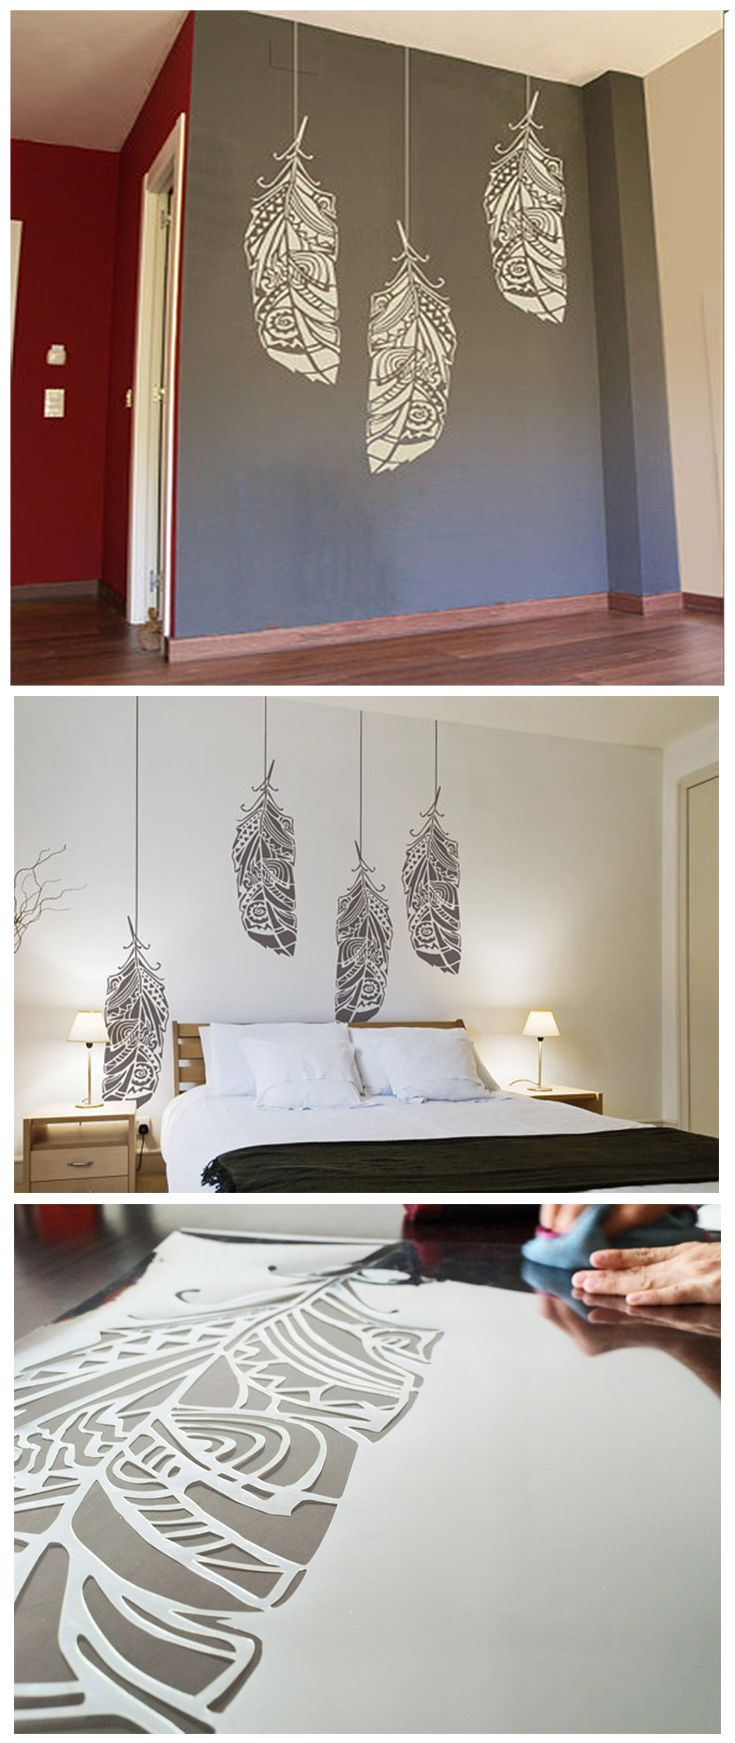 feather stencil ethnic decor element for wall furniture or textile painting ideas for